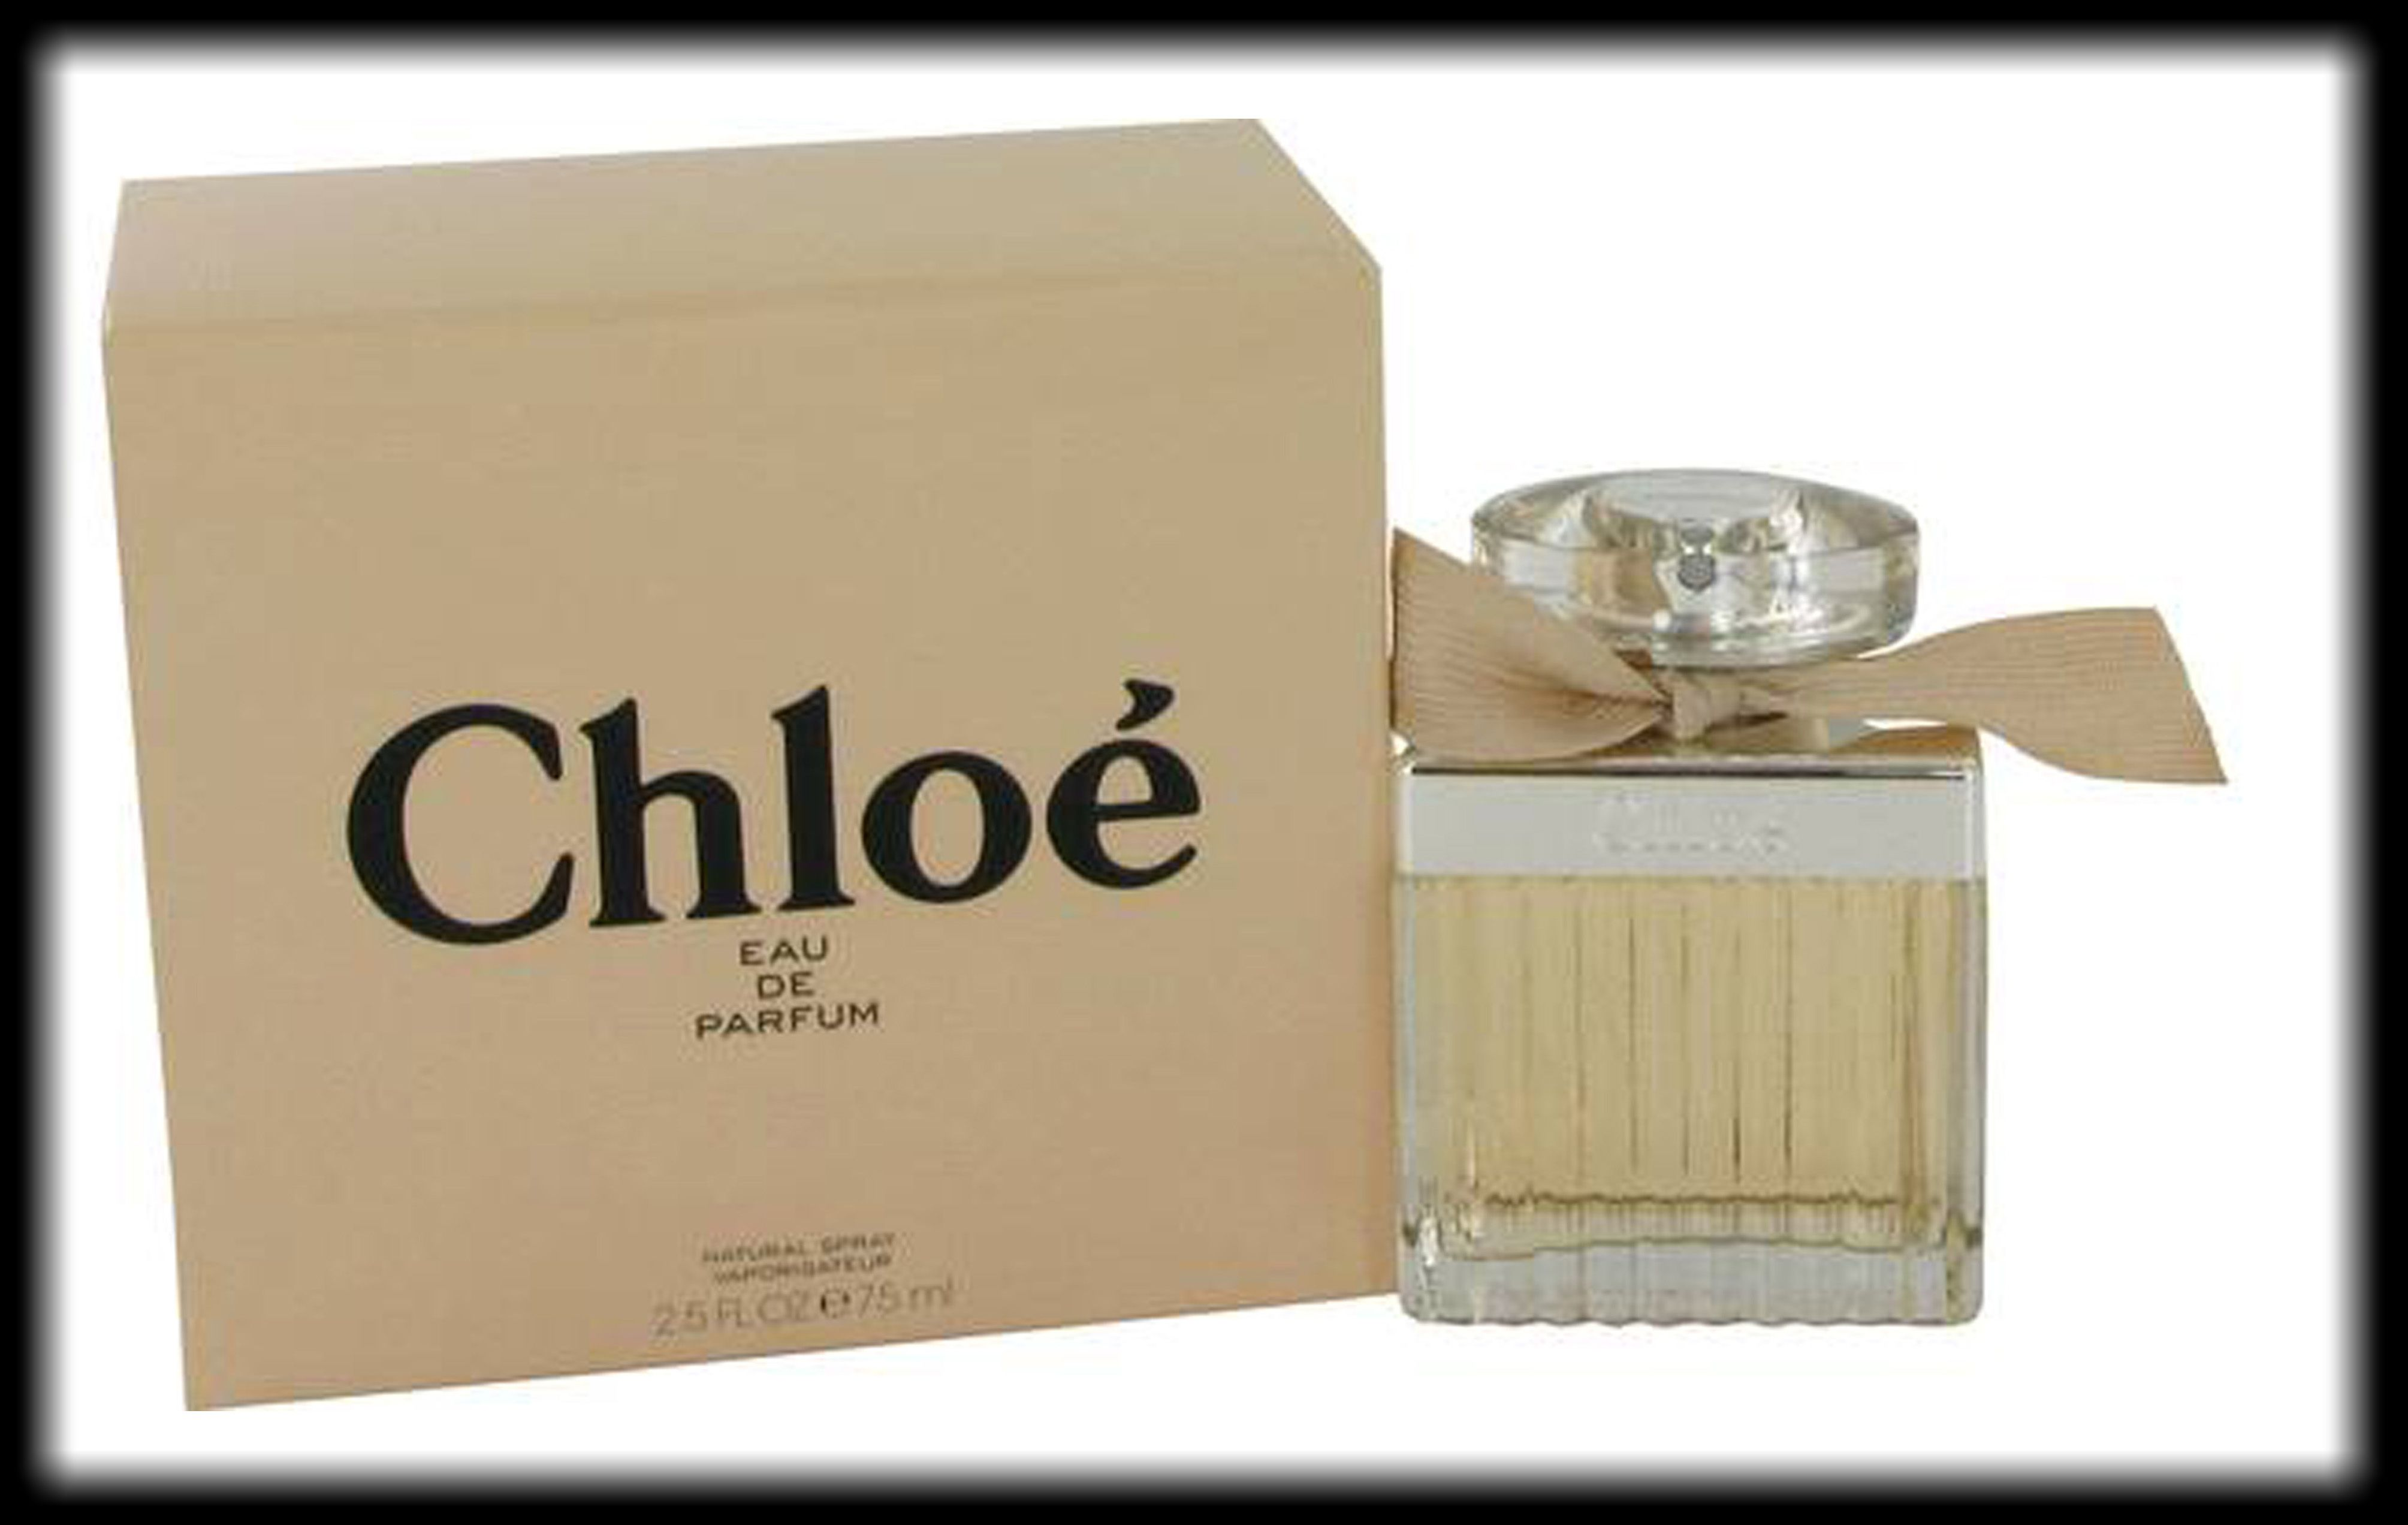 Clhoe (New) by Chloe